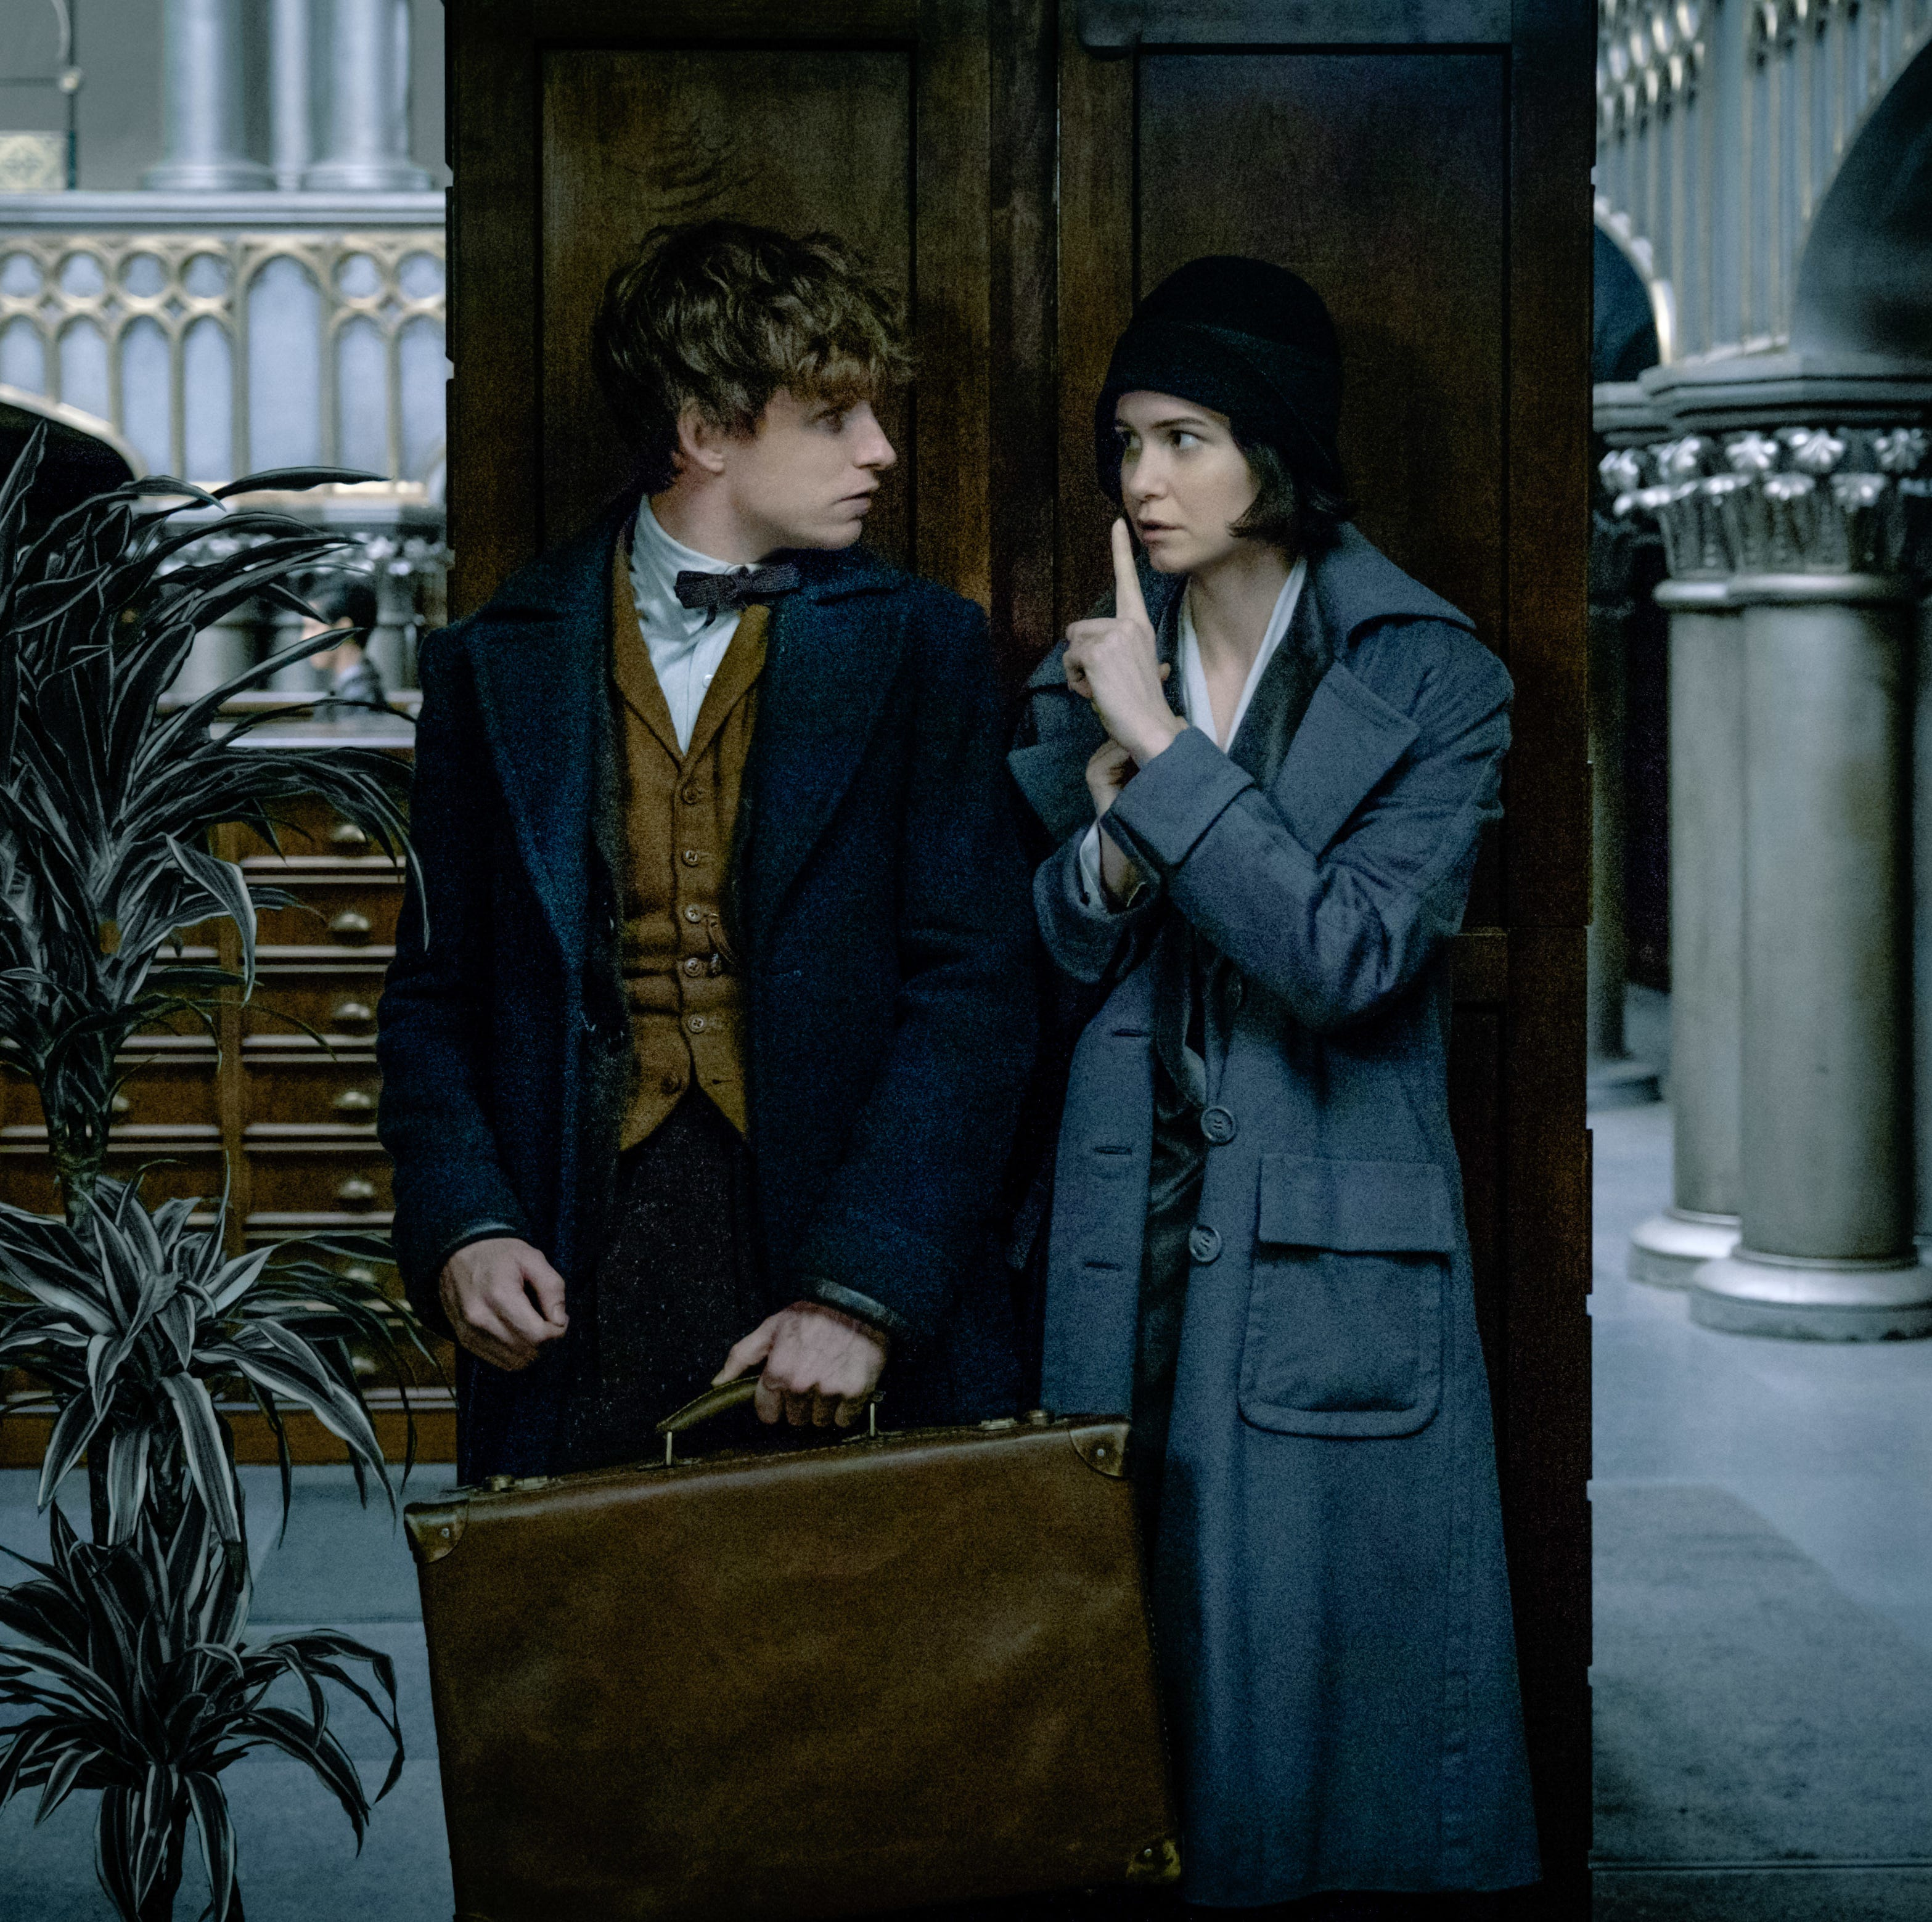 """Newt (Eddie Redmayne) and Tina (Katherine Waterston) are fugitives on a mission in """"Fantastic Beasts and Where to Find Them."""""""